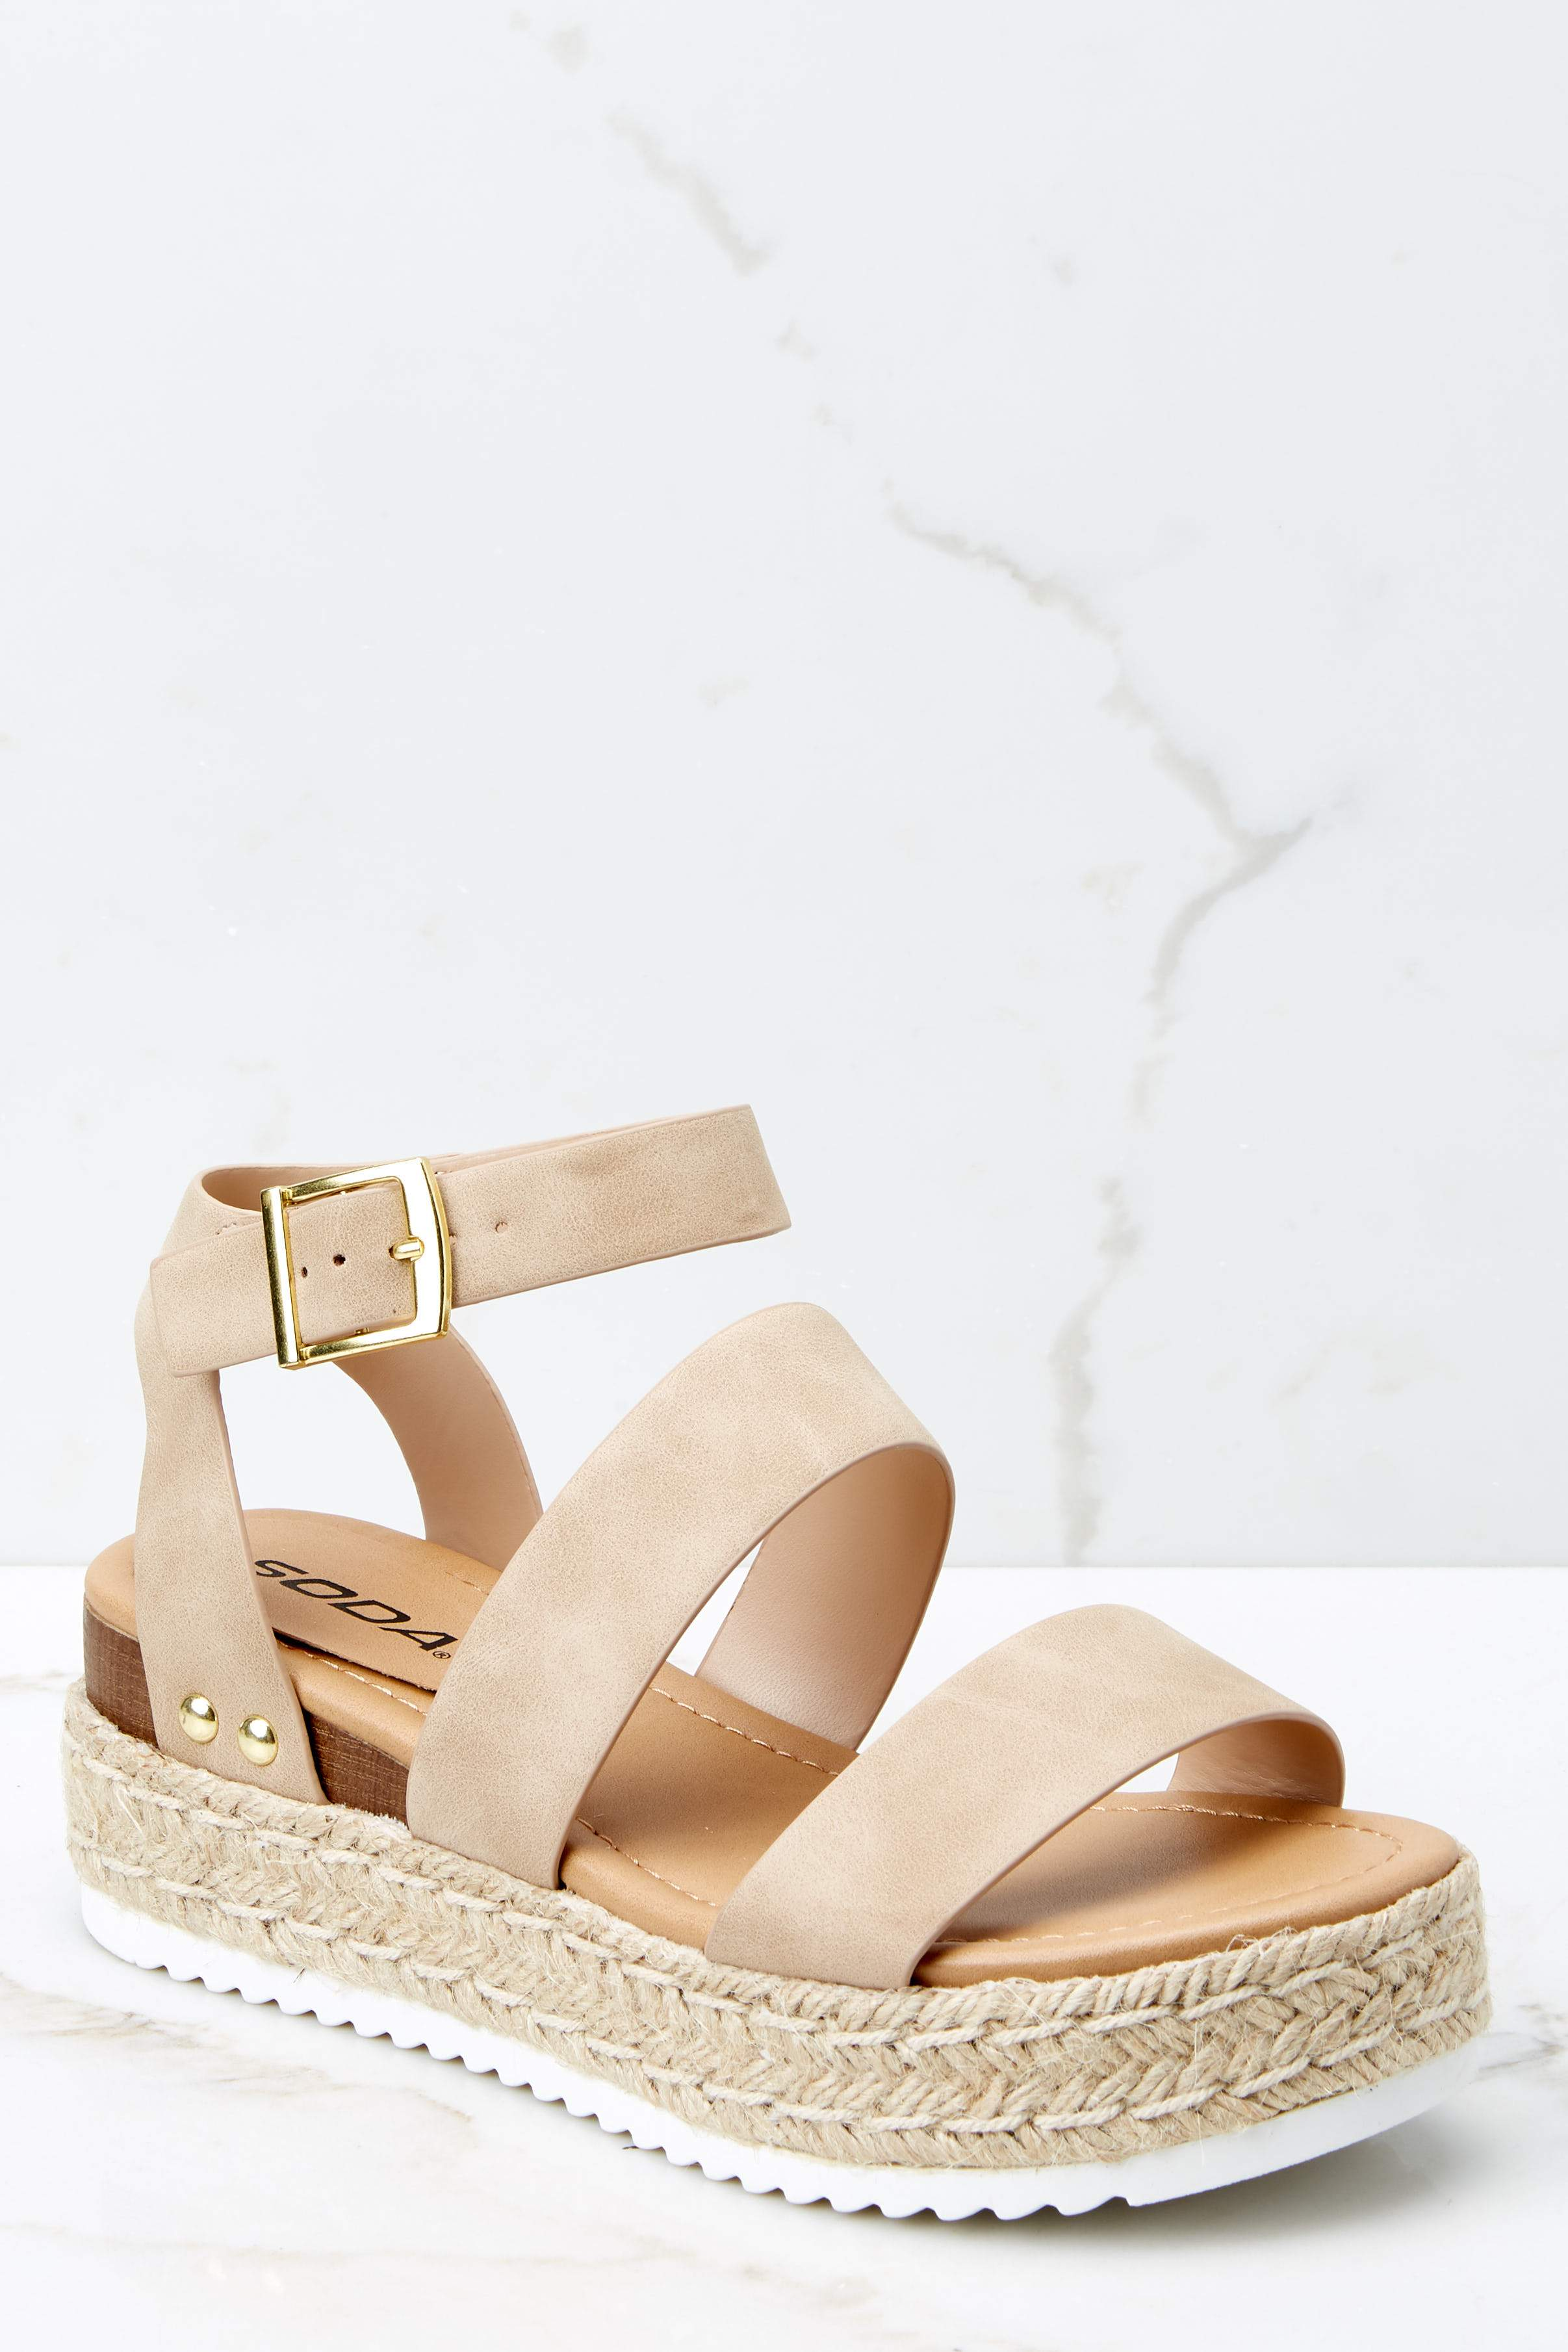 Going For Now Taupe Flatform Sandals